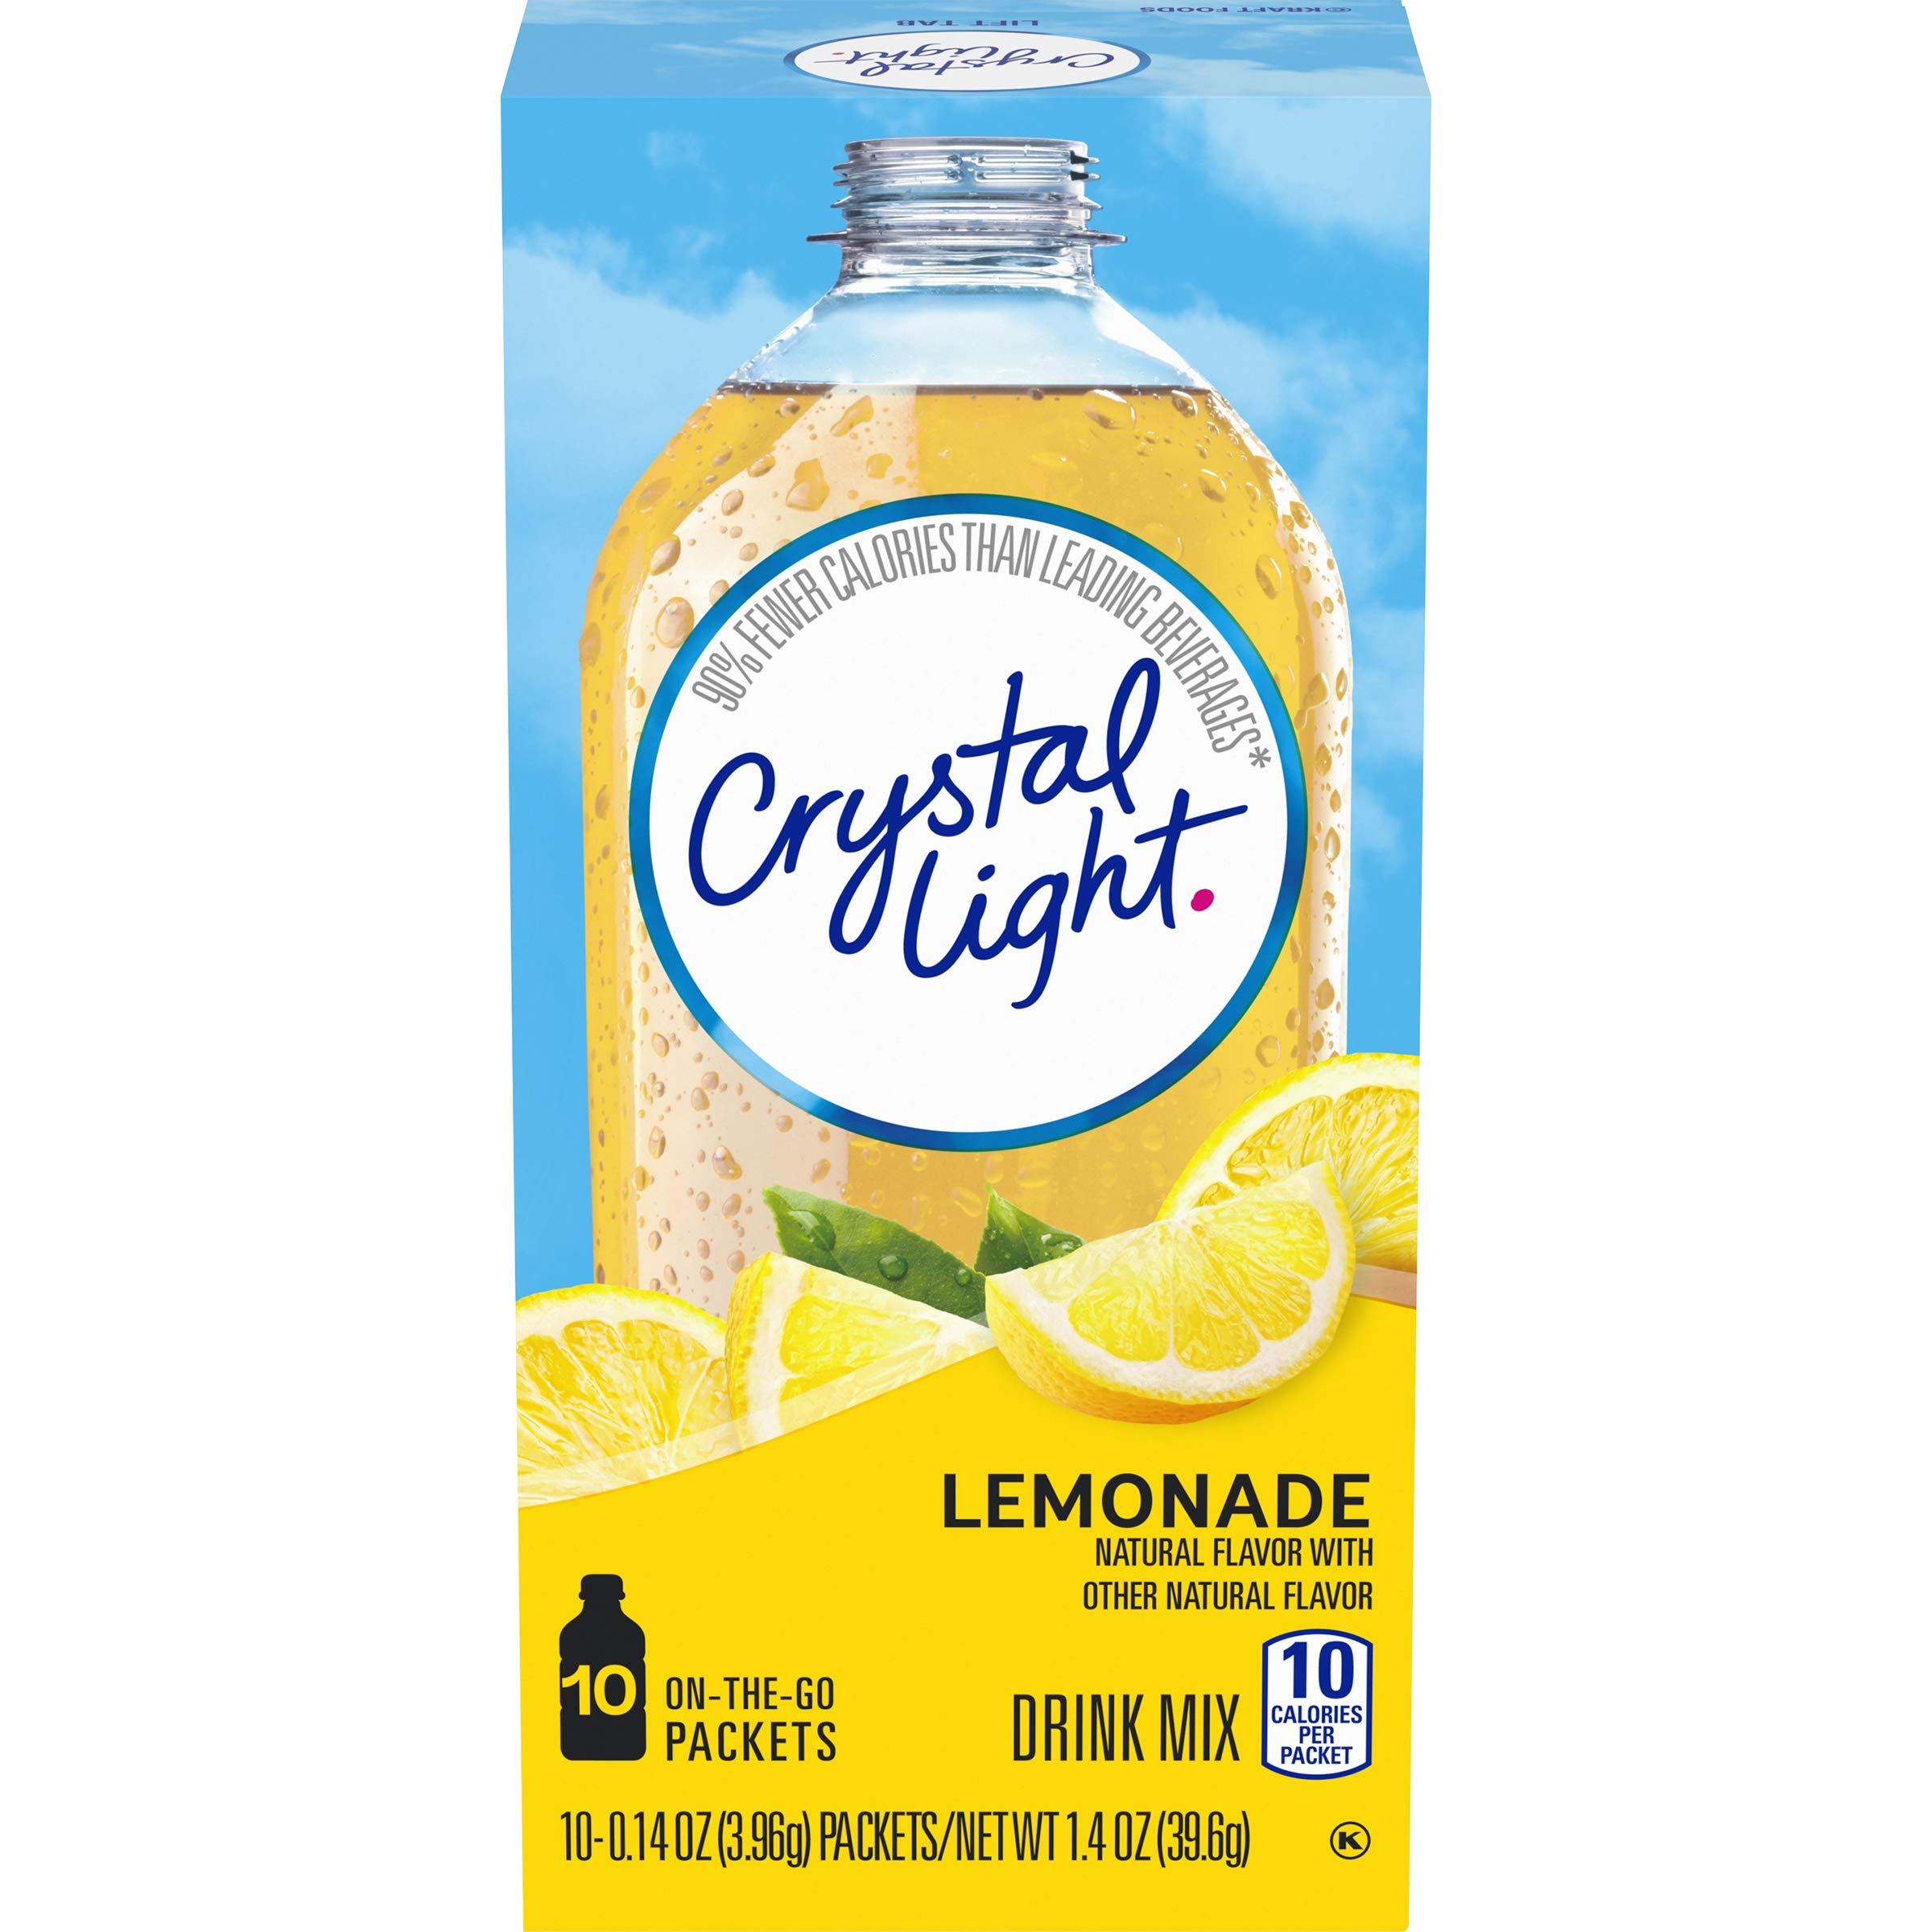 Crystal Light Sugar-Free Lemonade Drink Mix (60 On-the-Go Packets, 6 Packs of 10)